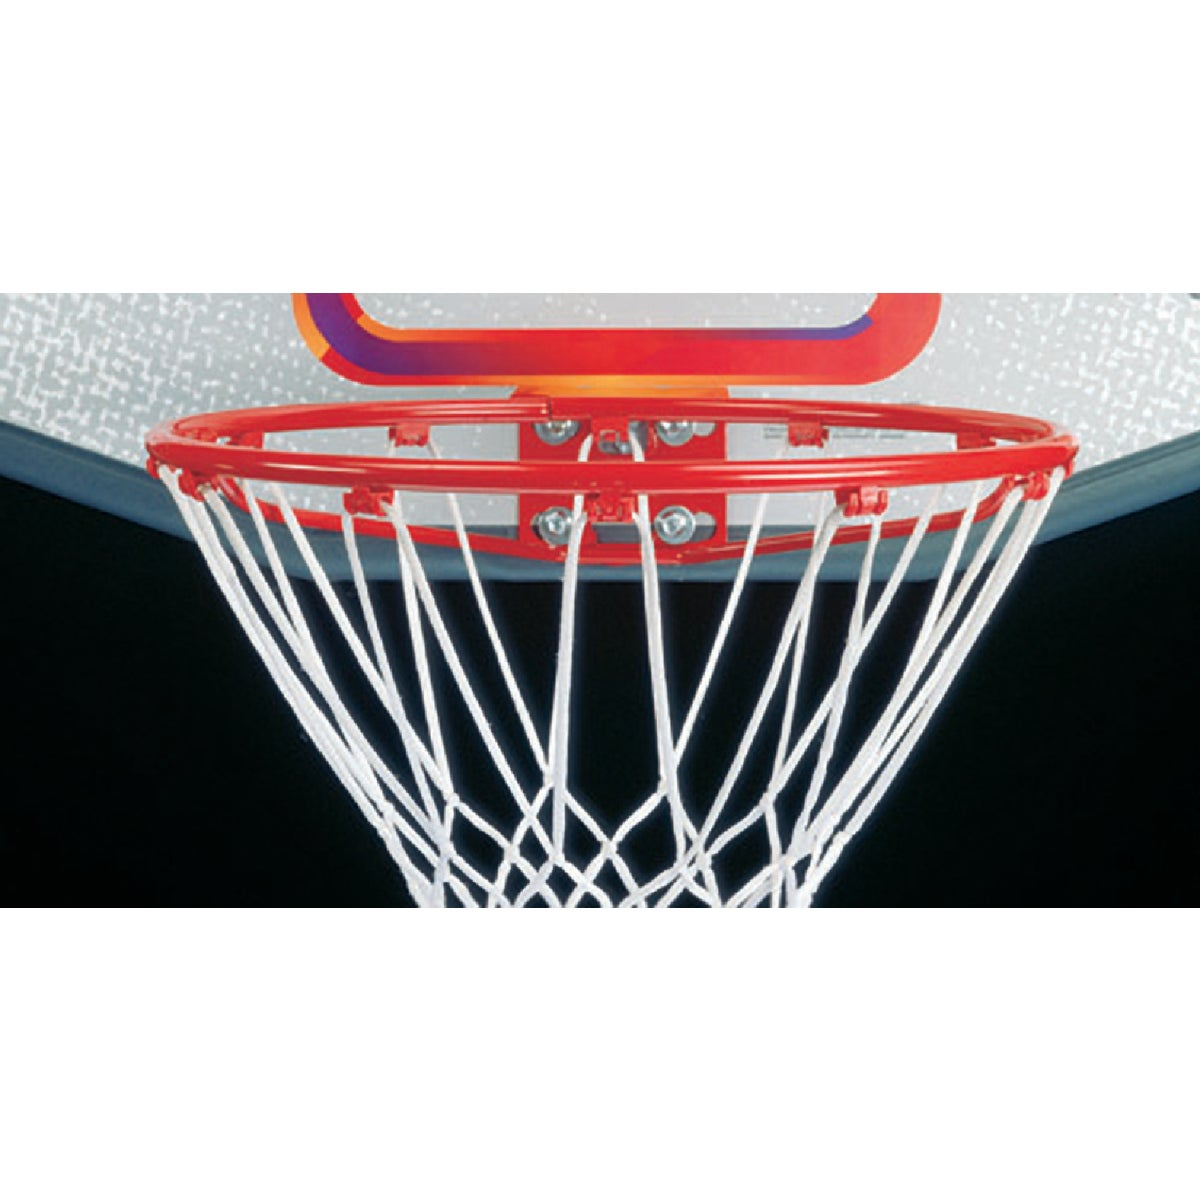 BASKETBALL GOAL AND NET - 7811SR by Huffy Sports